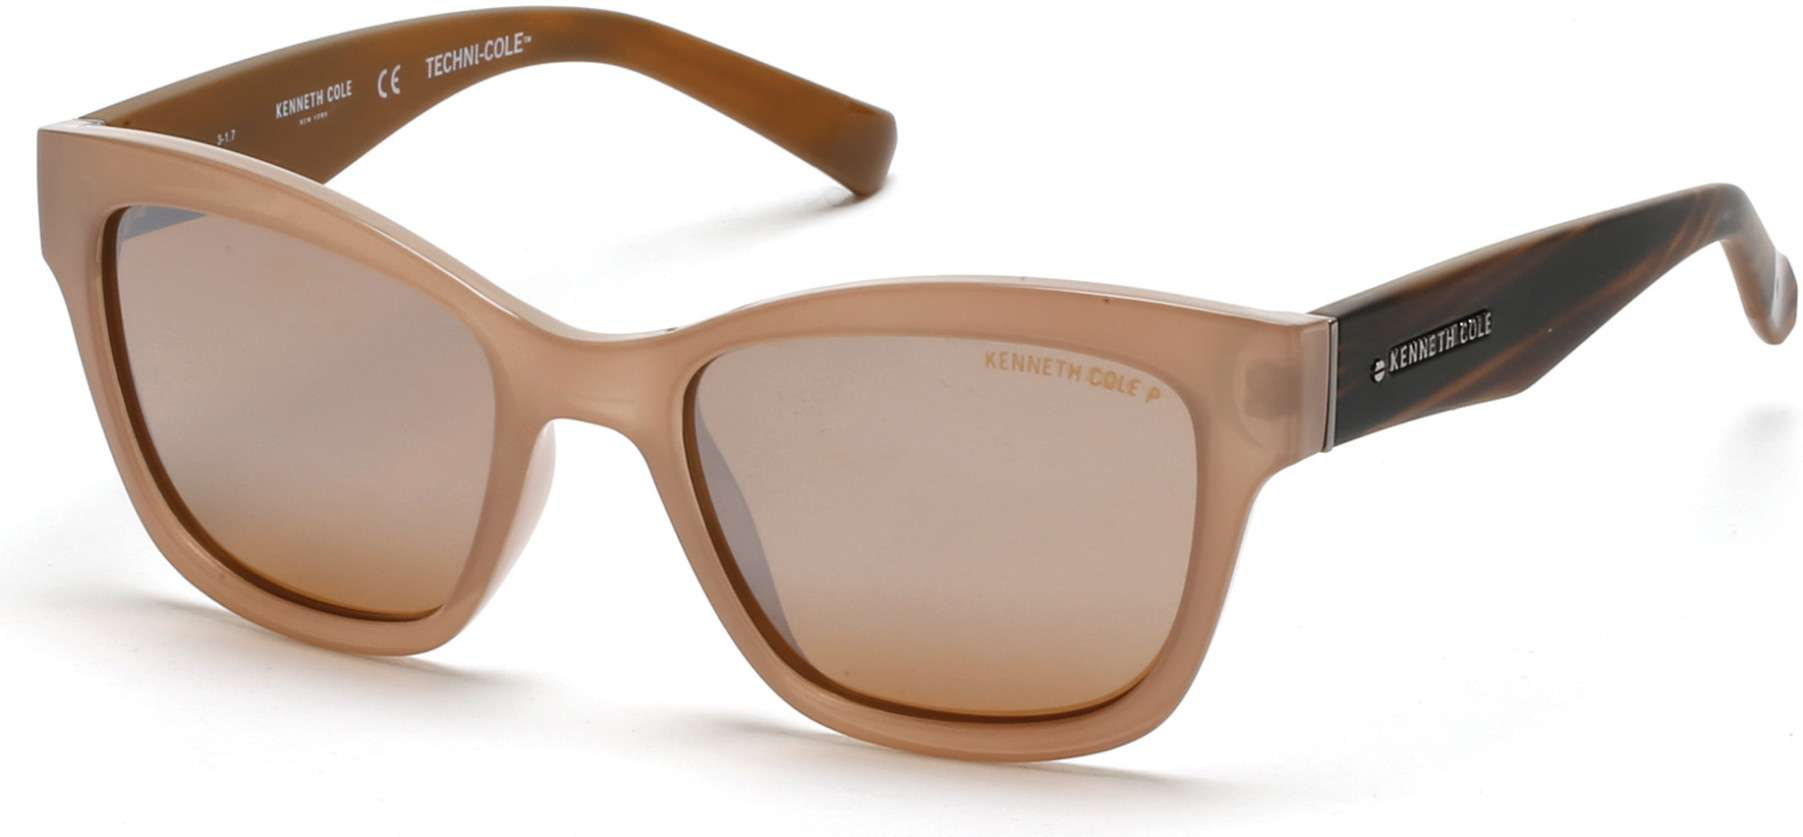 shiny light brown / brown polarized